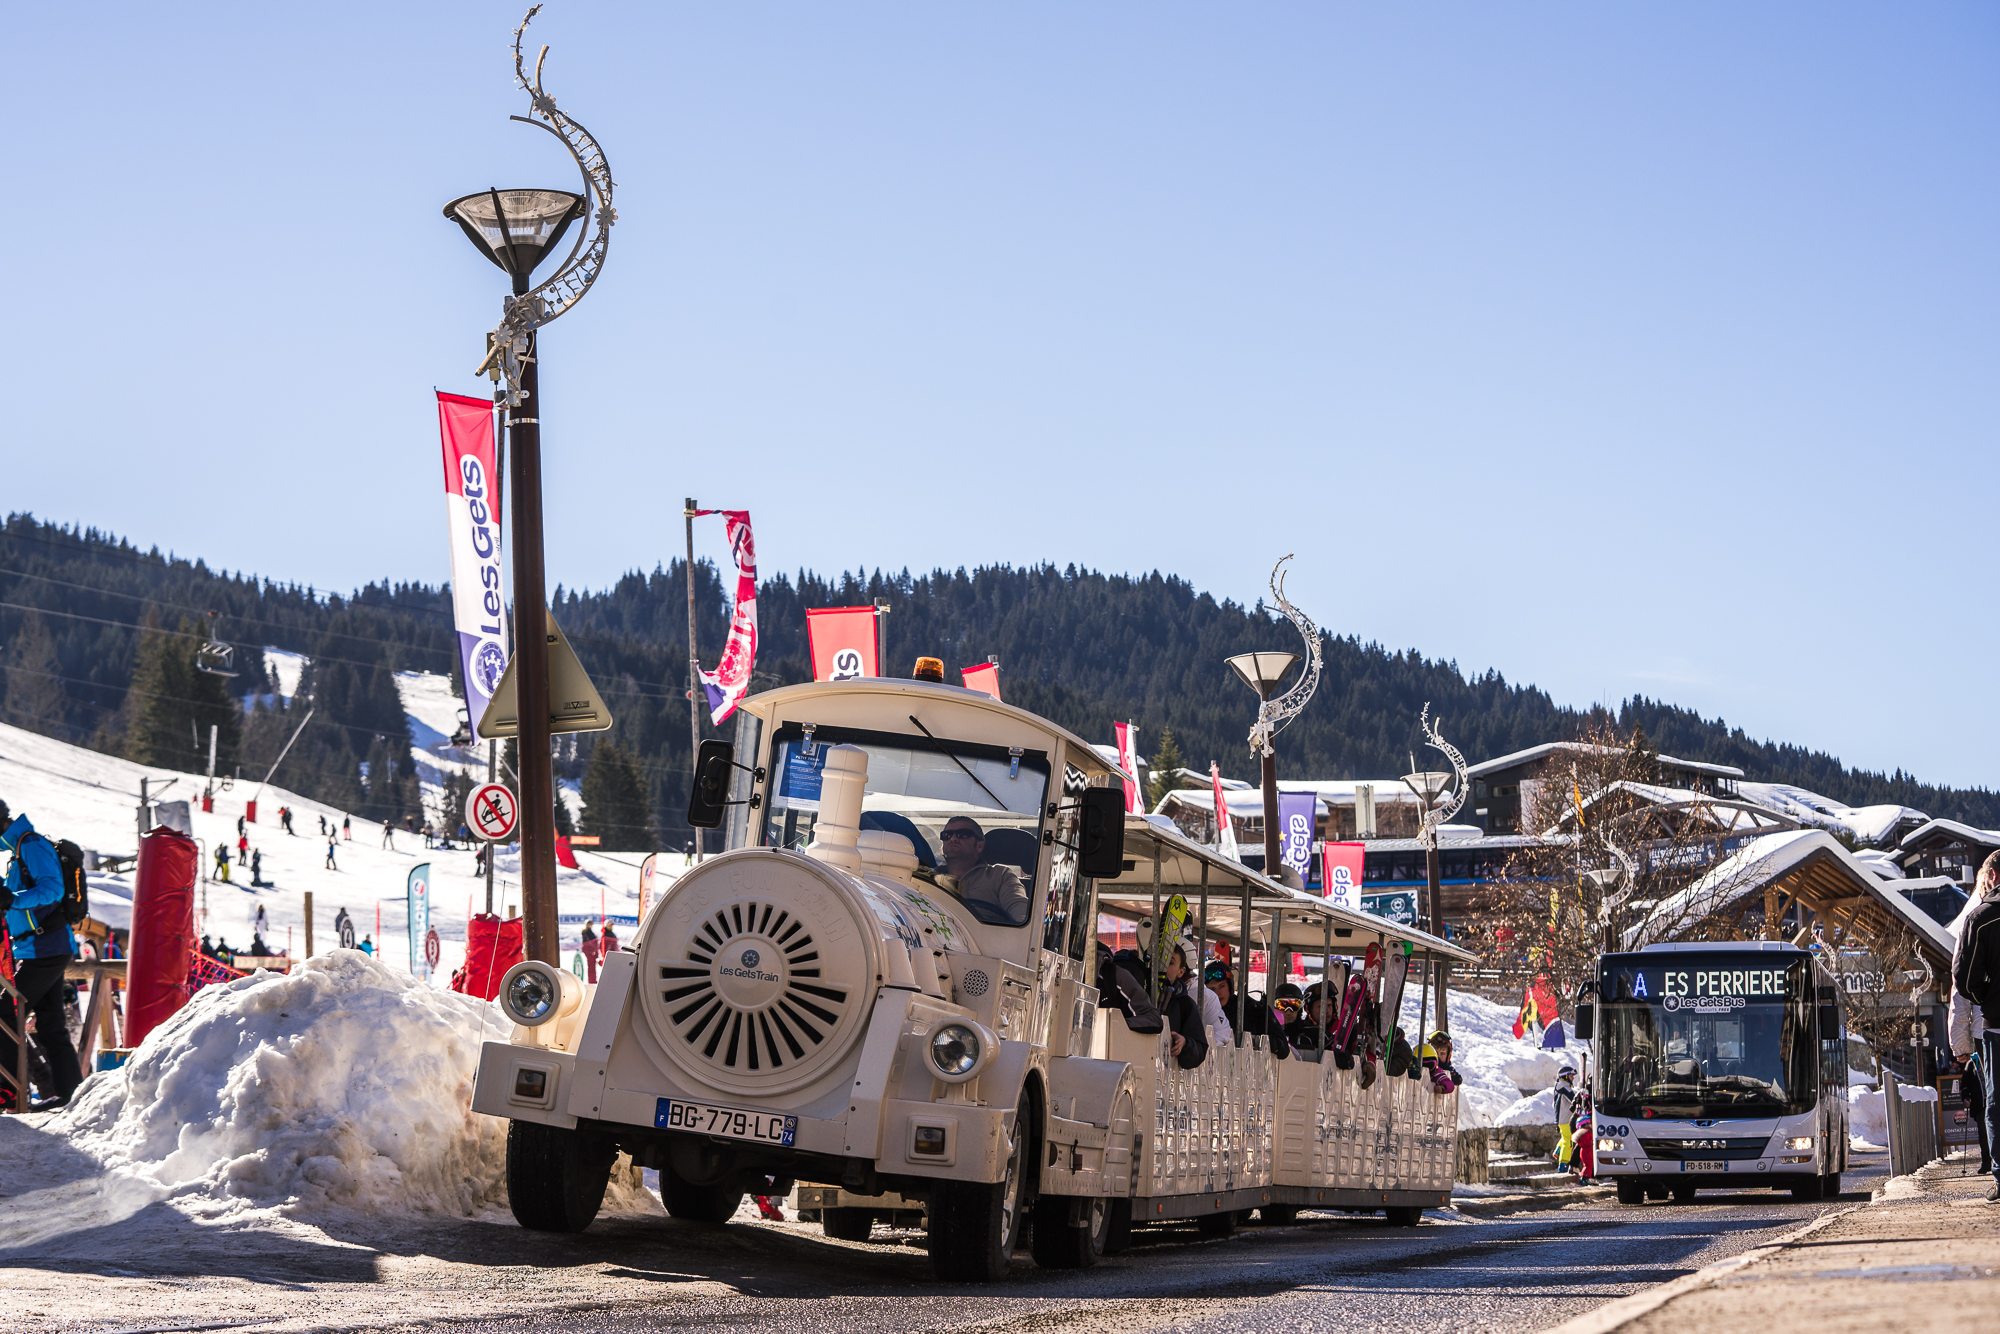 Free little train and bus in the village of Les Gets in winter